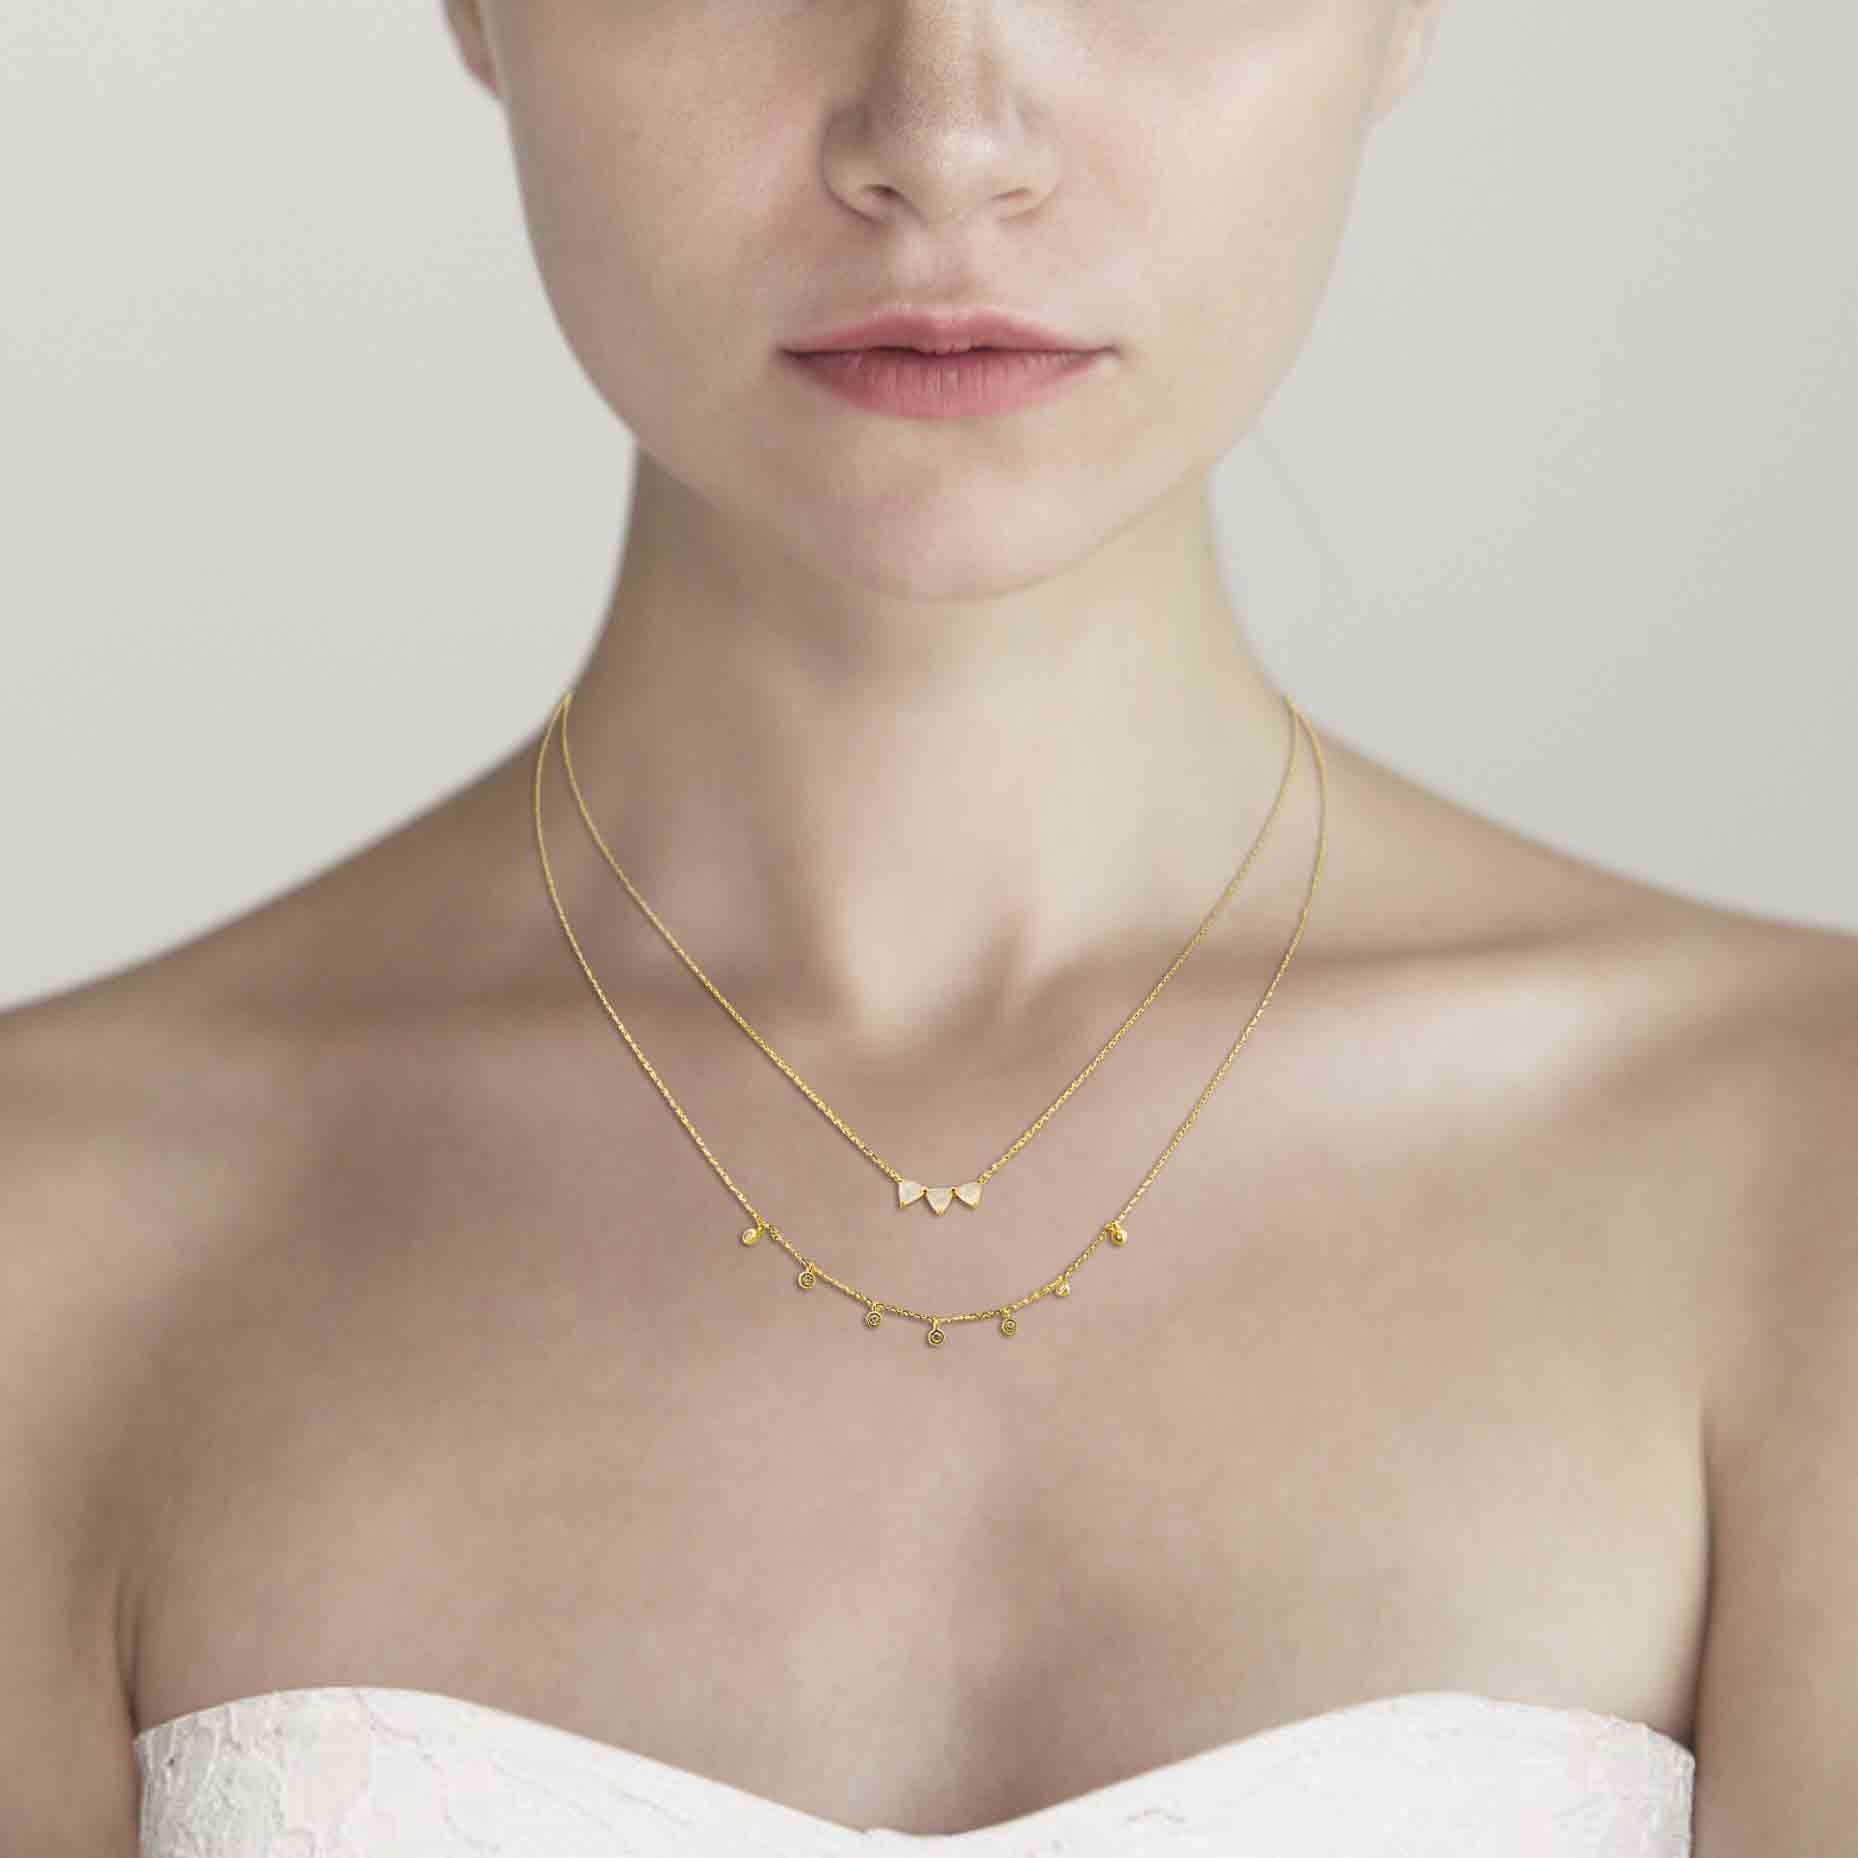 SIMPLE DOUBLE CHAIN NECKLACE WITH ROCK CRYSTAL CENTER AND STATIONED CZS